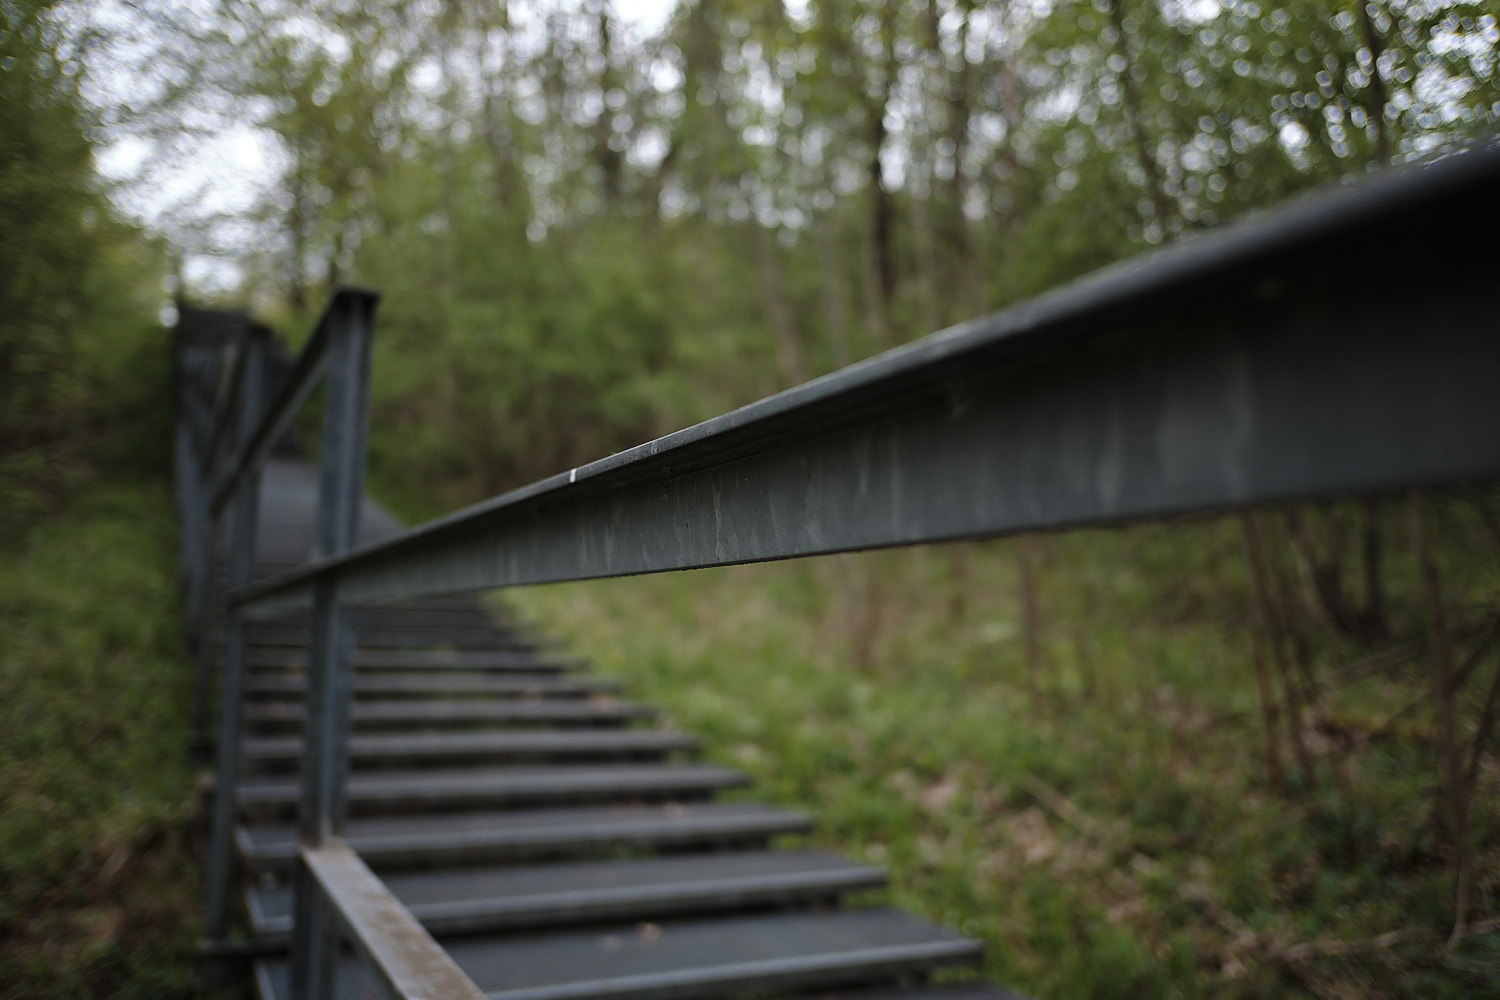 Modern metal stairway from the forest into the Memorial Site of the KZ-Buchenwald, Weimar, Germany